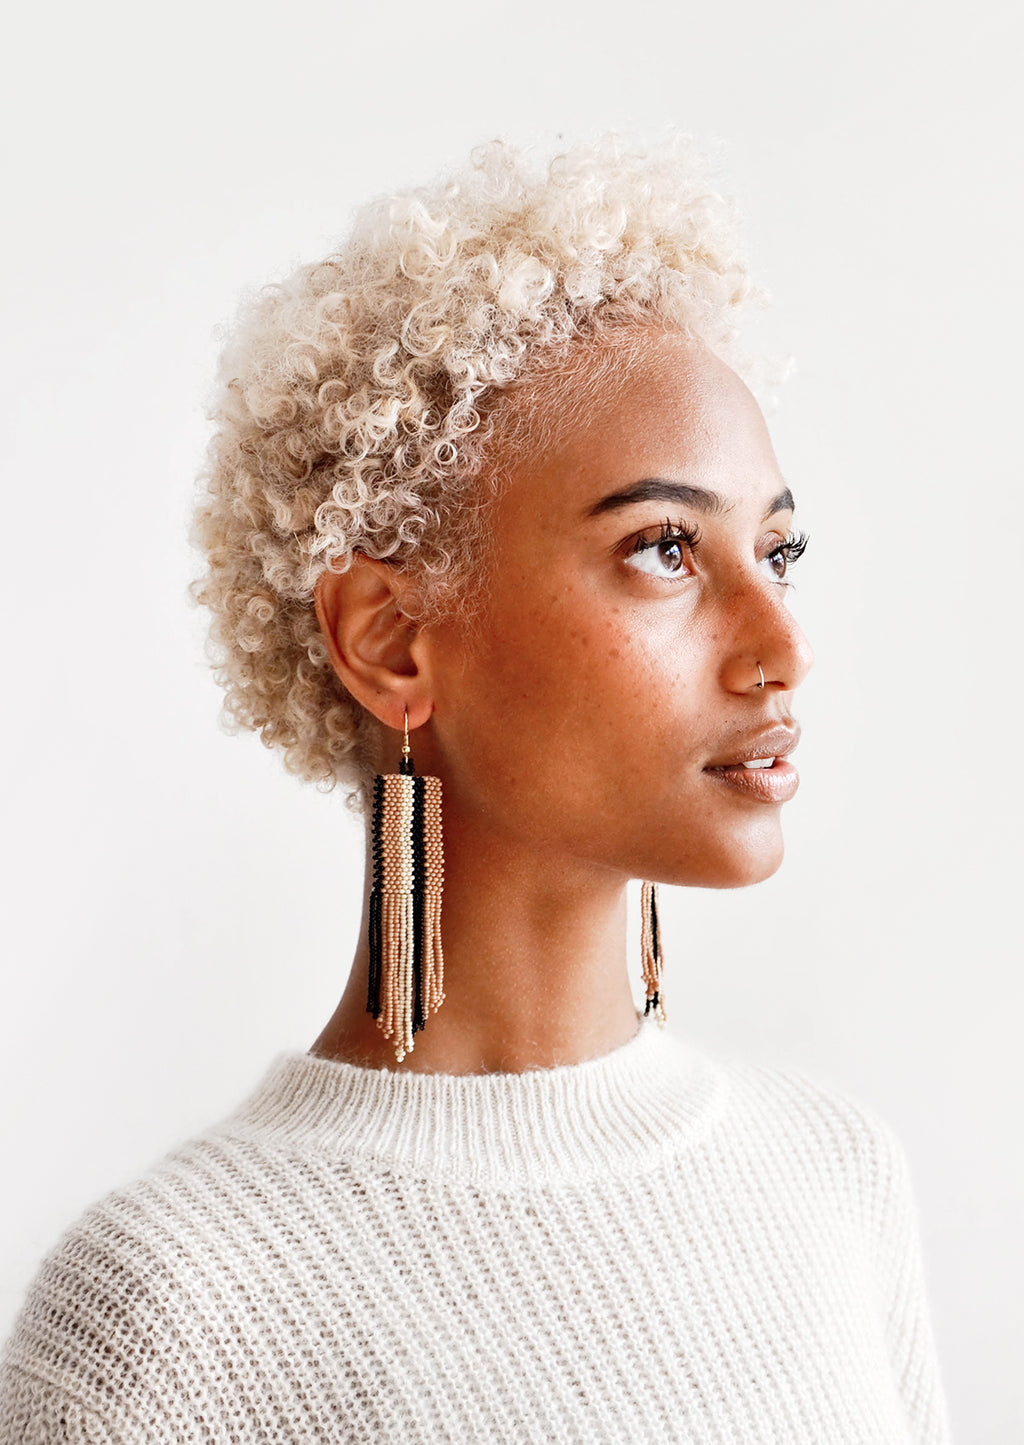 2: Model wears brown, black, and white striped fringe earrings and white sweater.